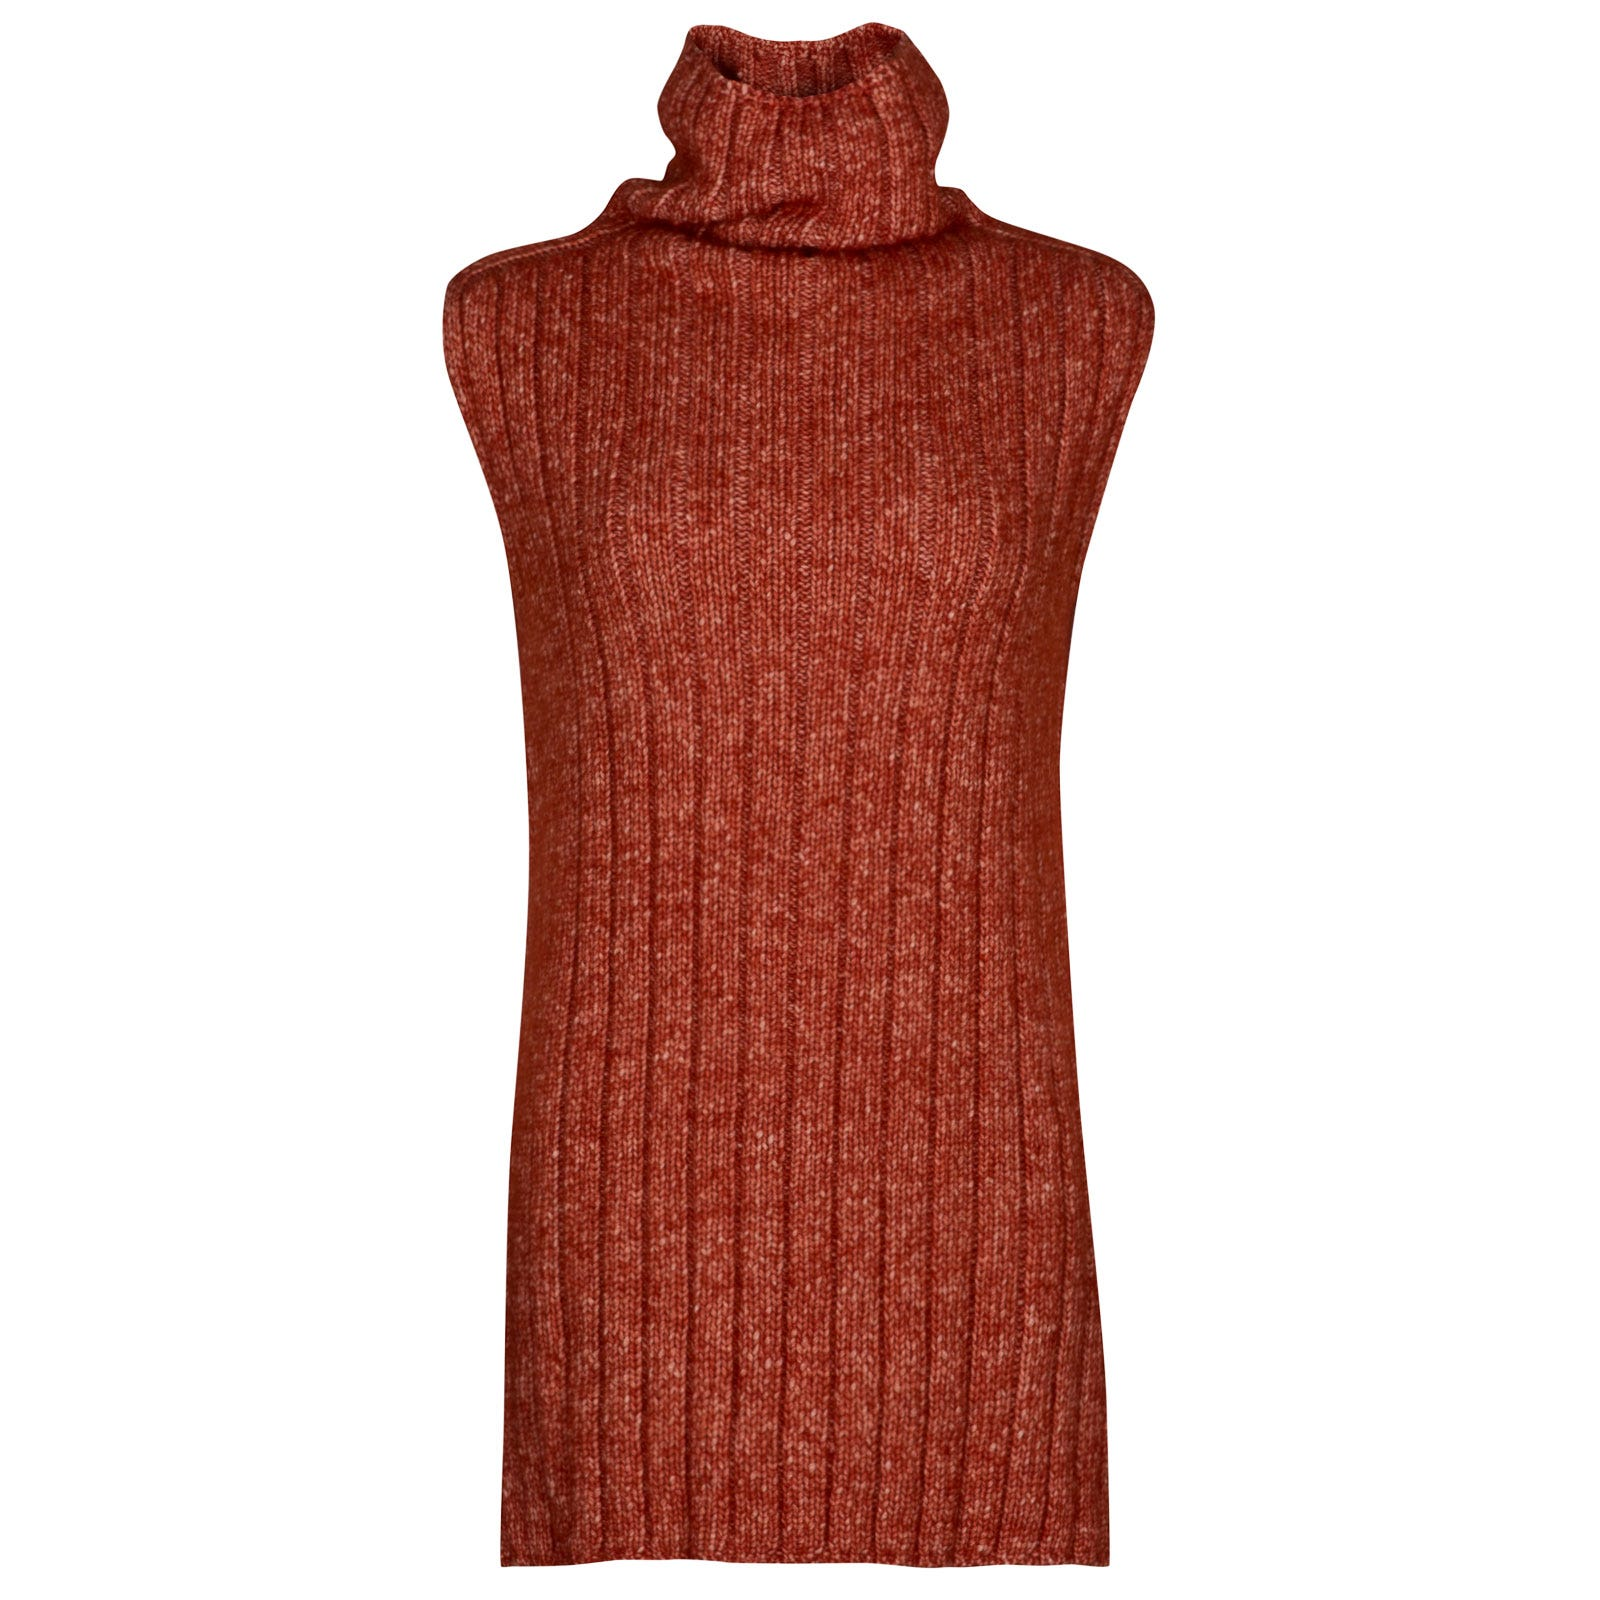 John Smedley conwy Alpaca, Wool & Cotton Sweater in Flare Orange-L